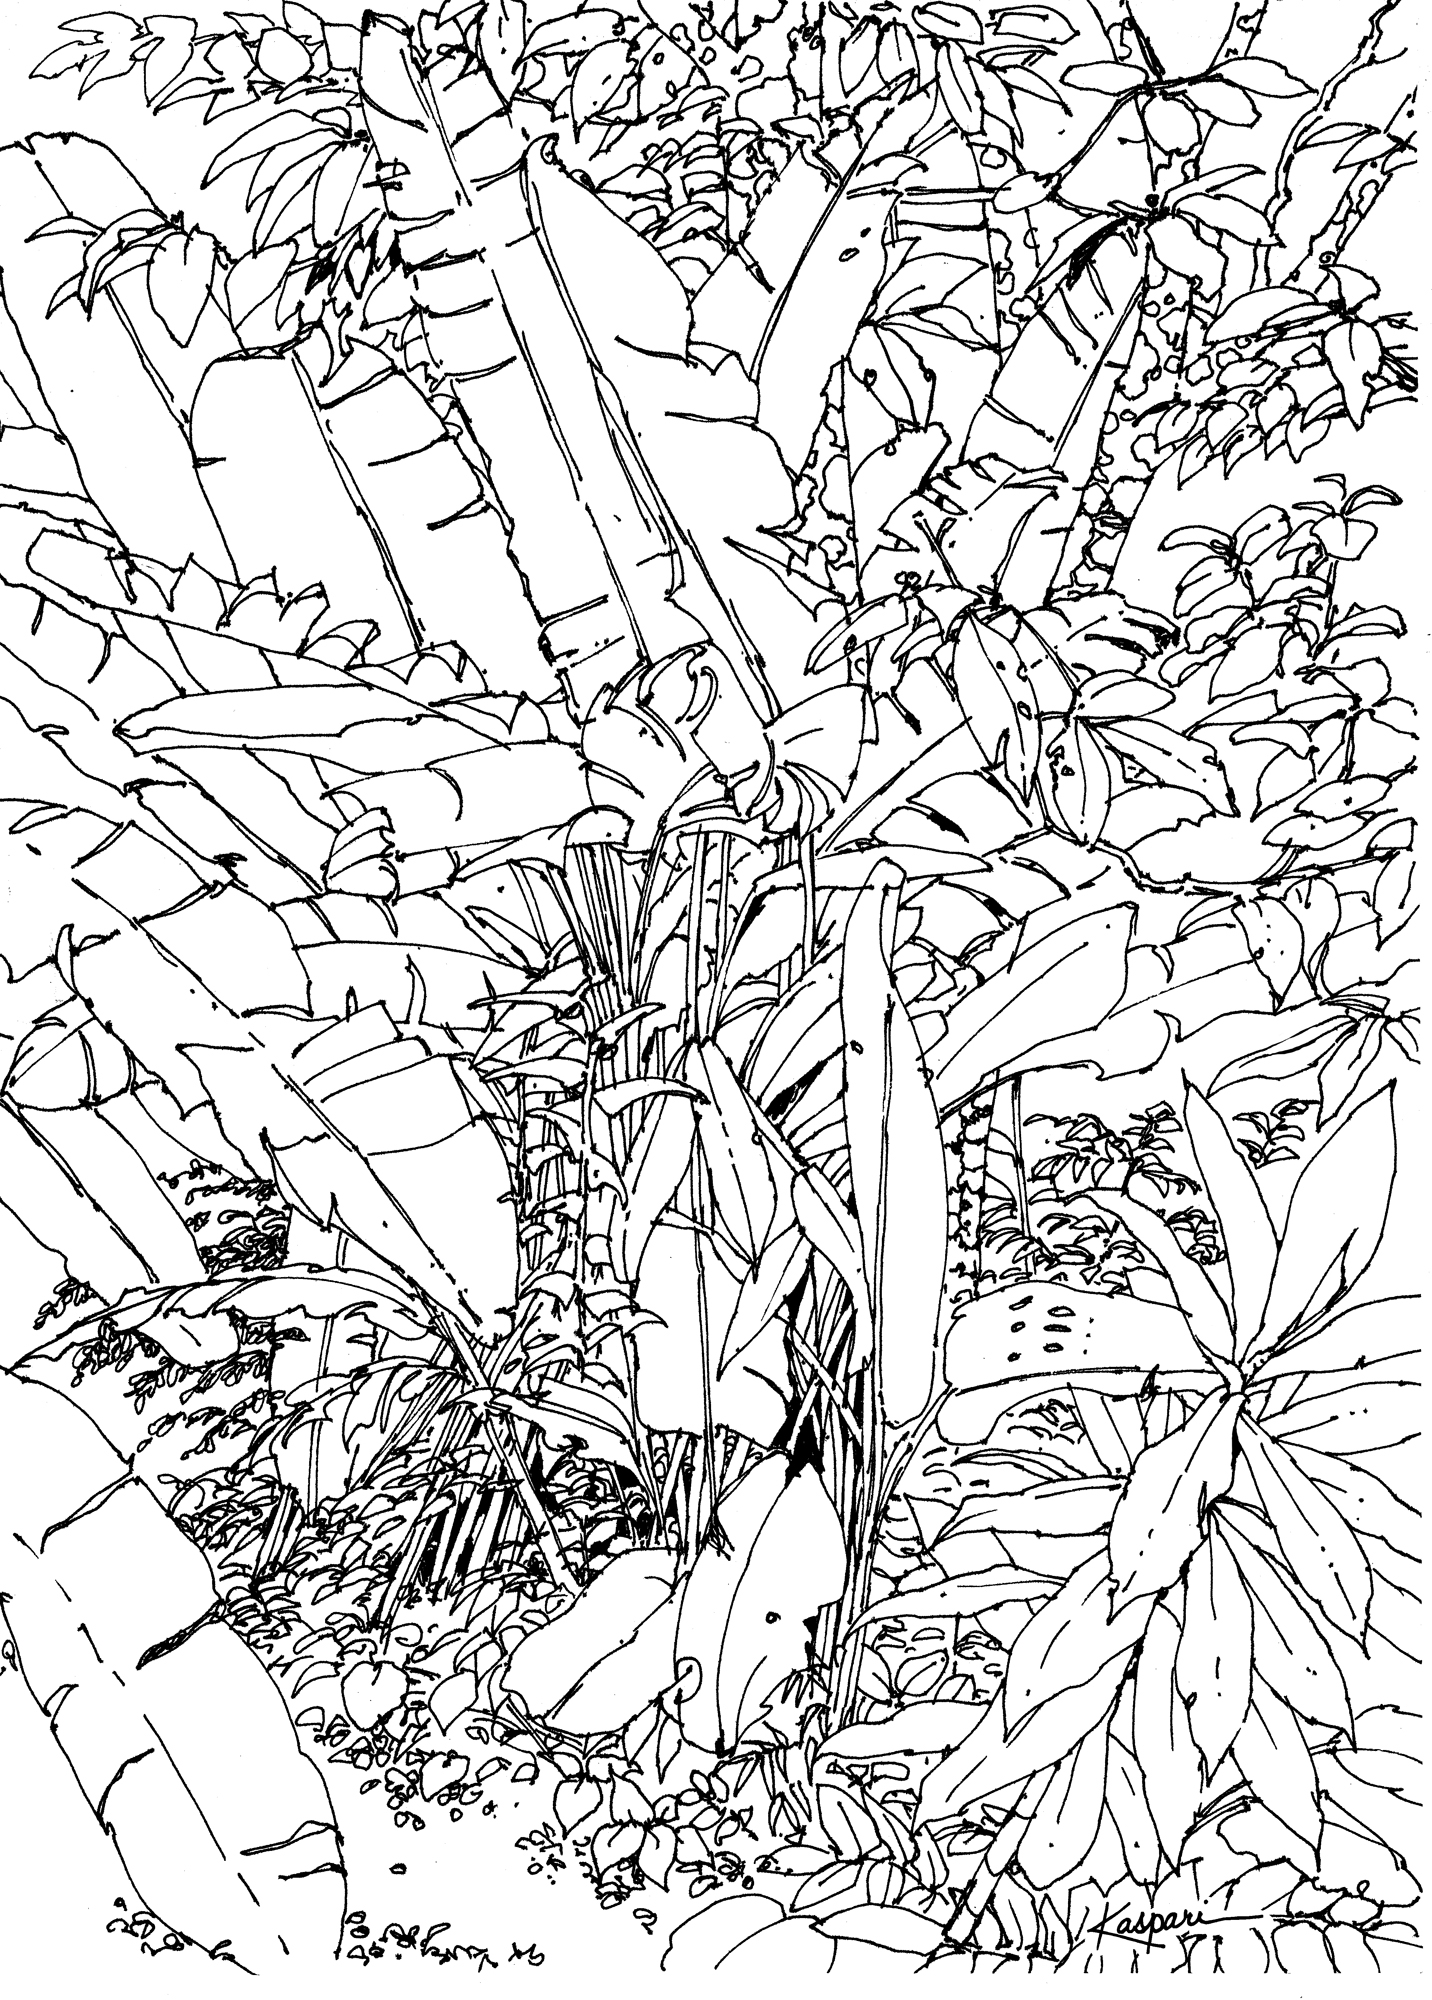 Forest Drawing Pictures at GetDrawings.com.